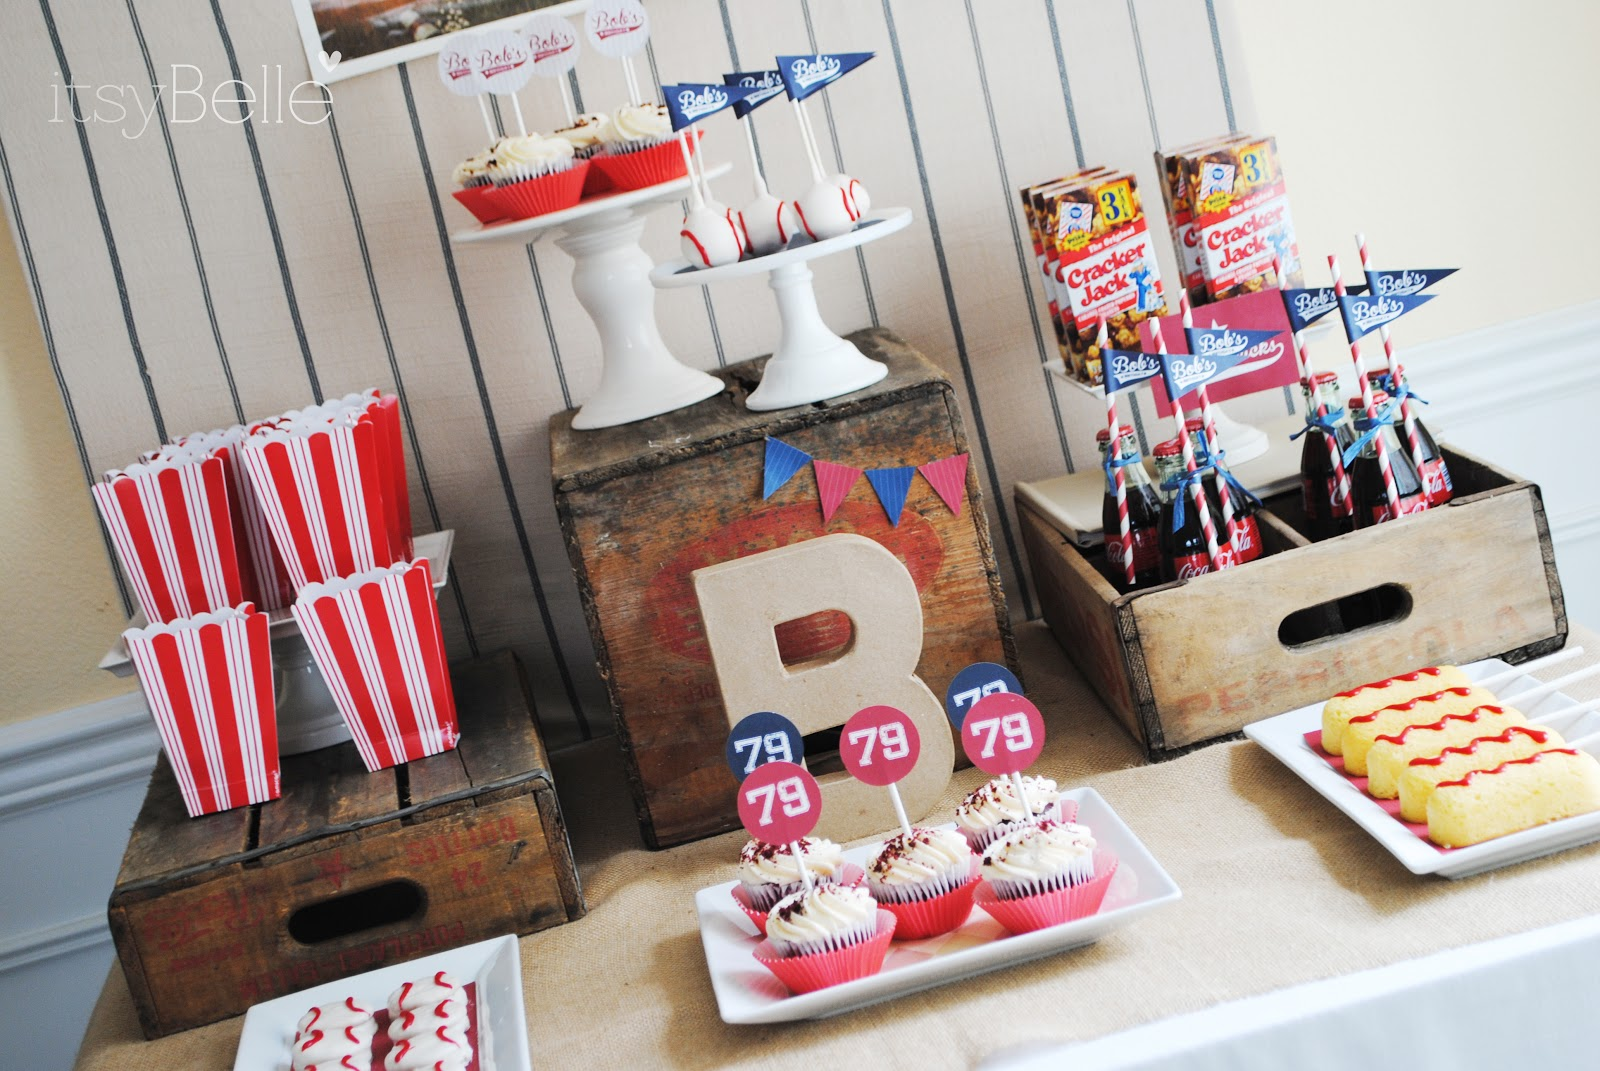 Real Parties Vintage Baseball Birthday Itsy Belle